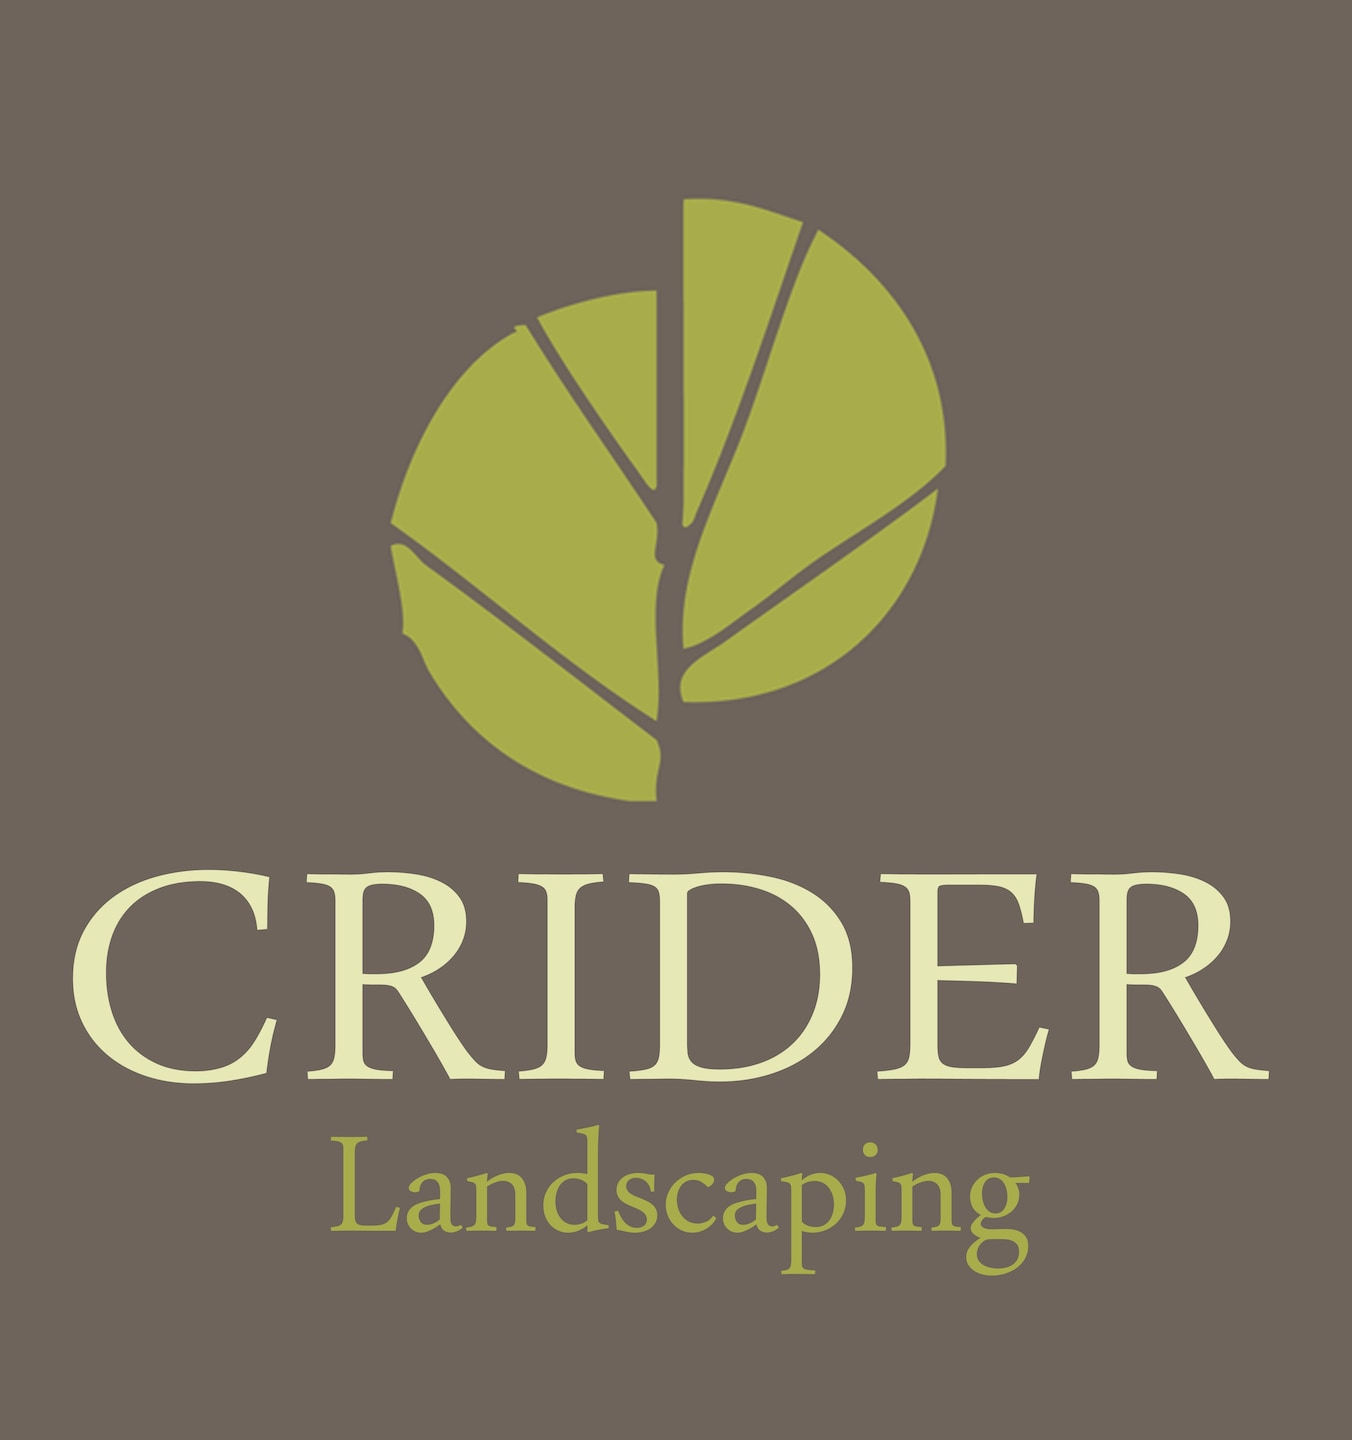 Crider Landscaping